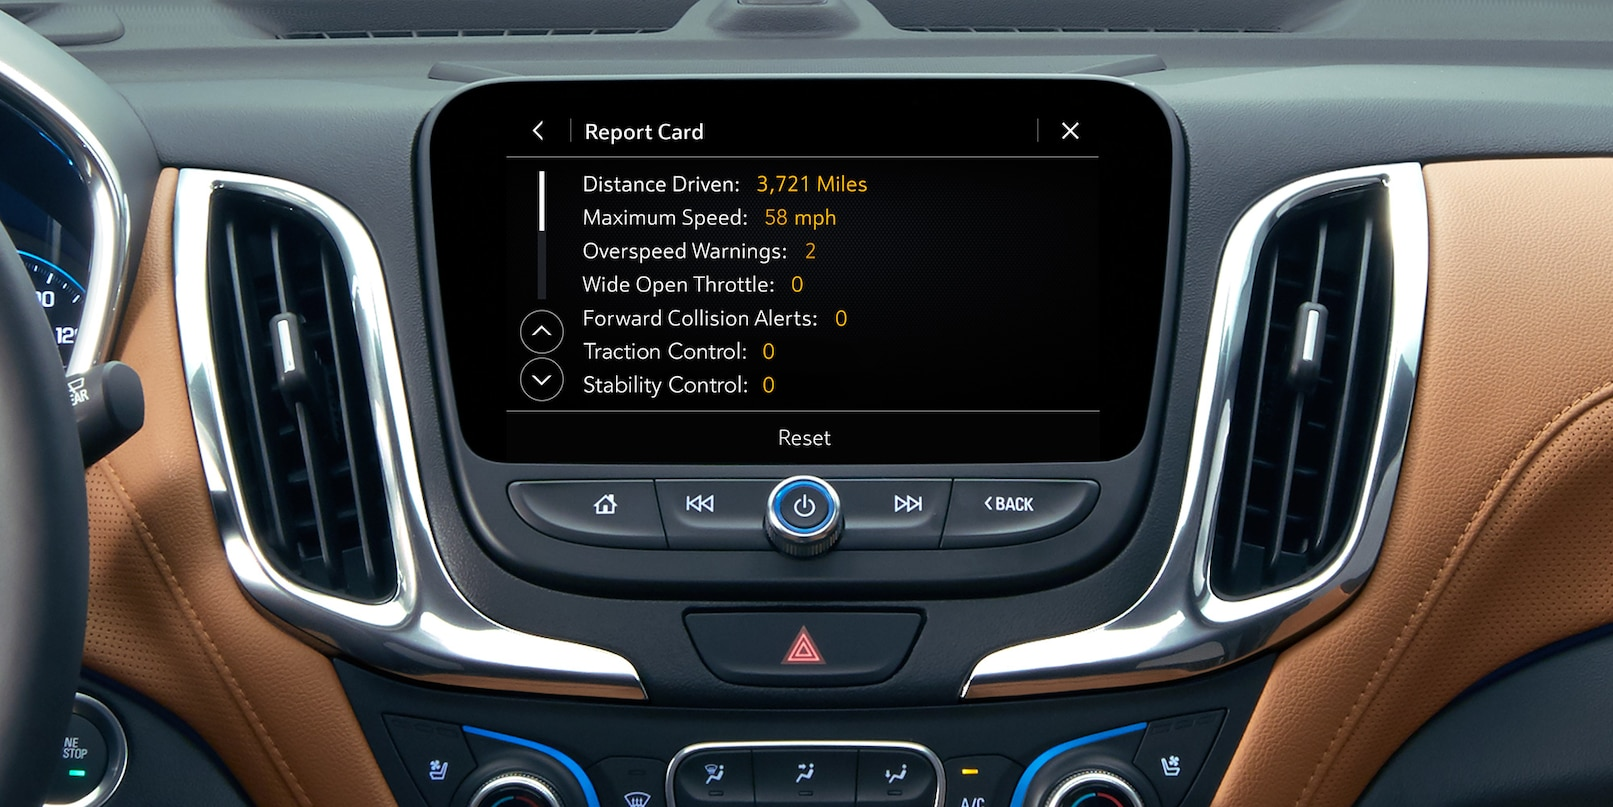 Teen Driver Technology in the 2020 Equinox